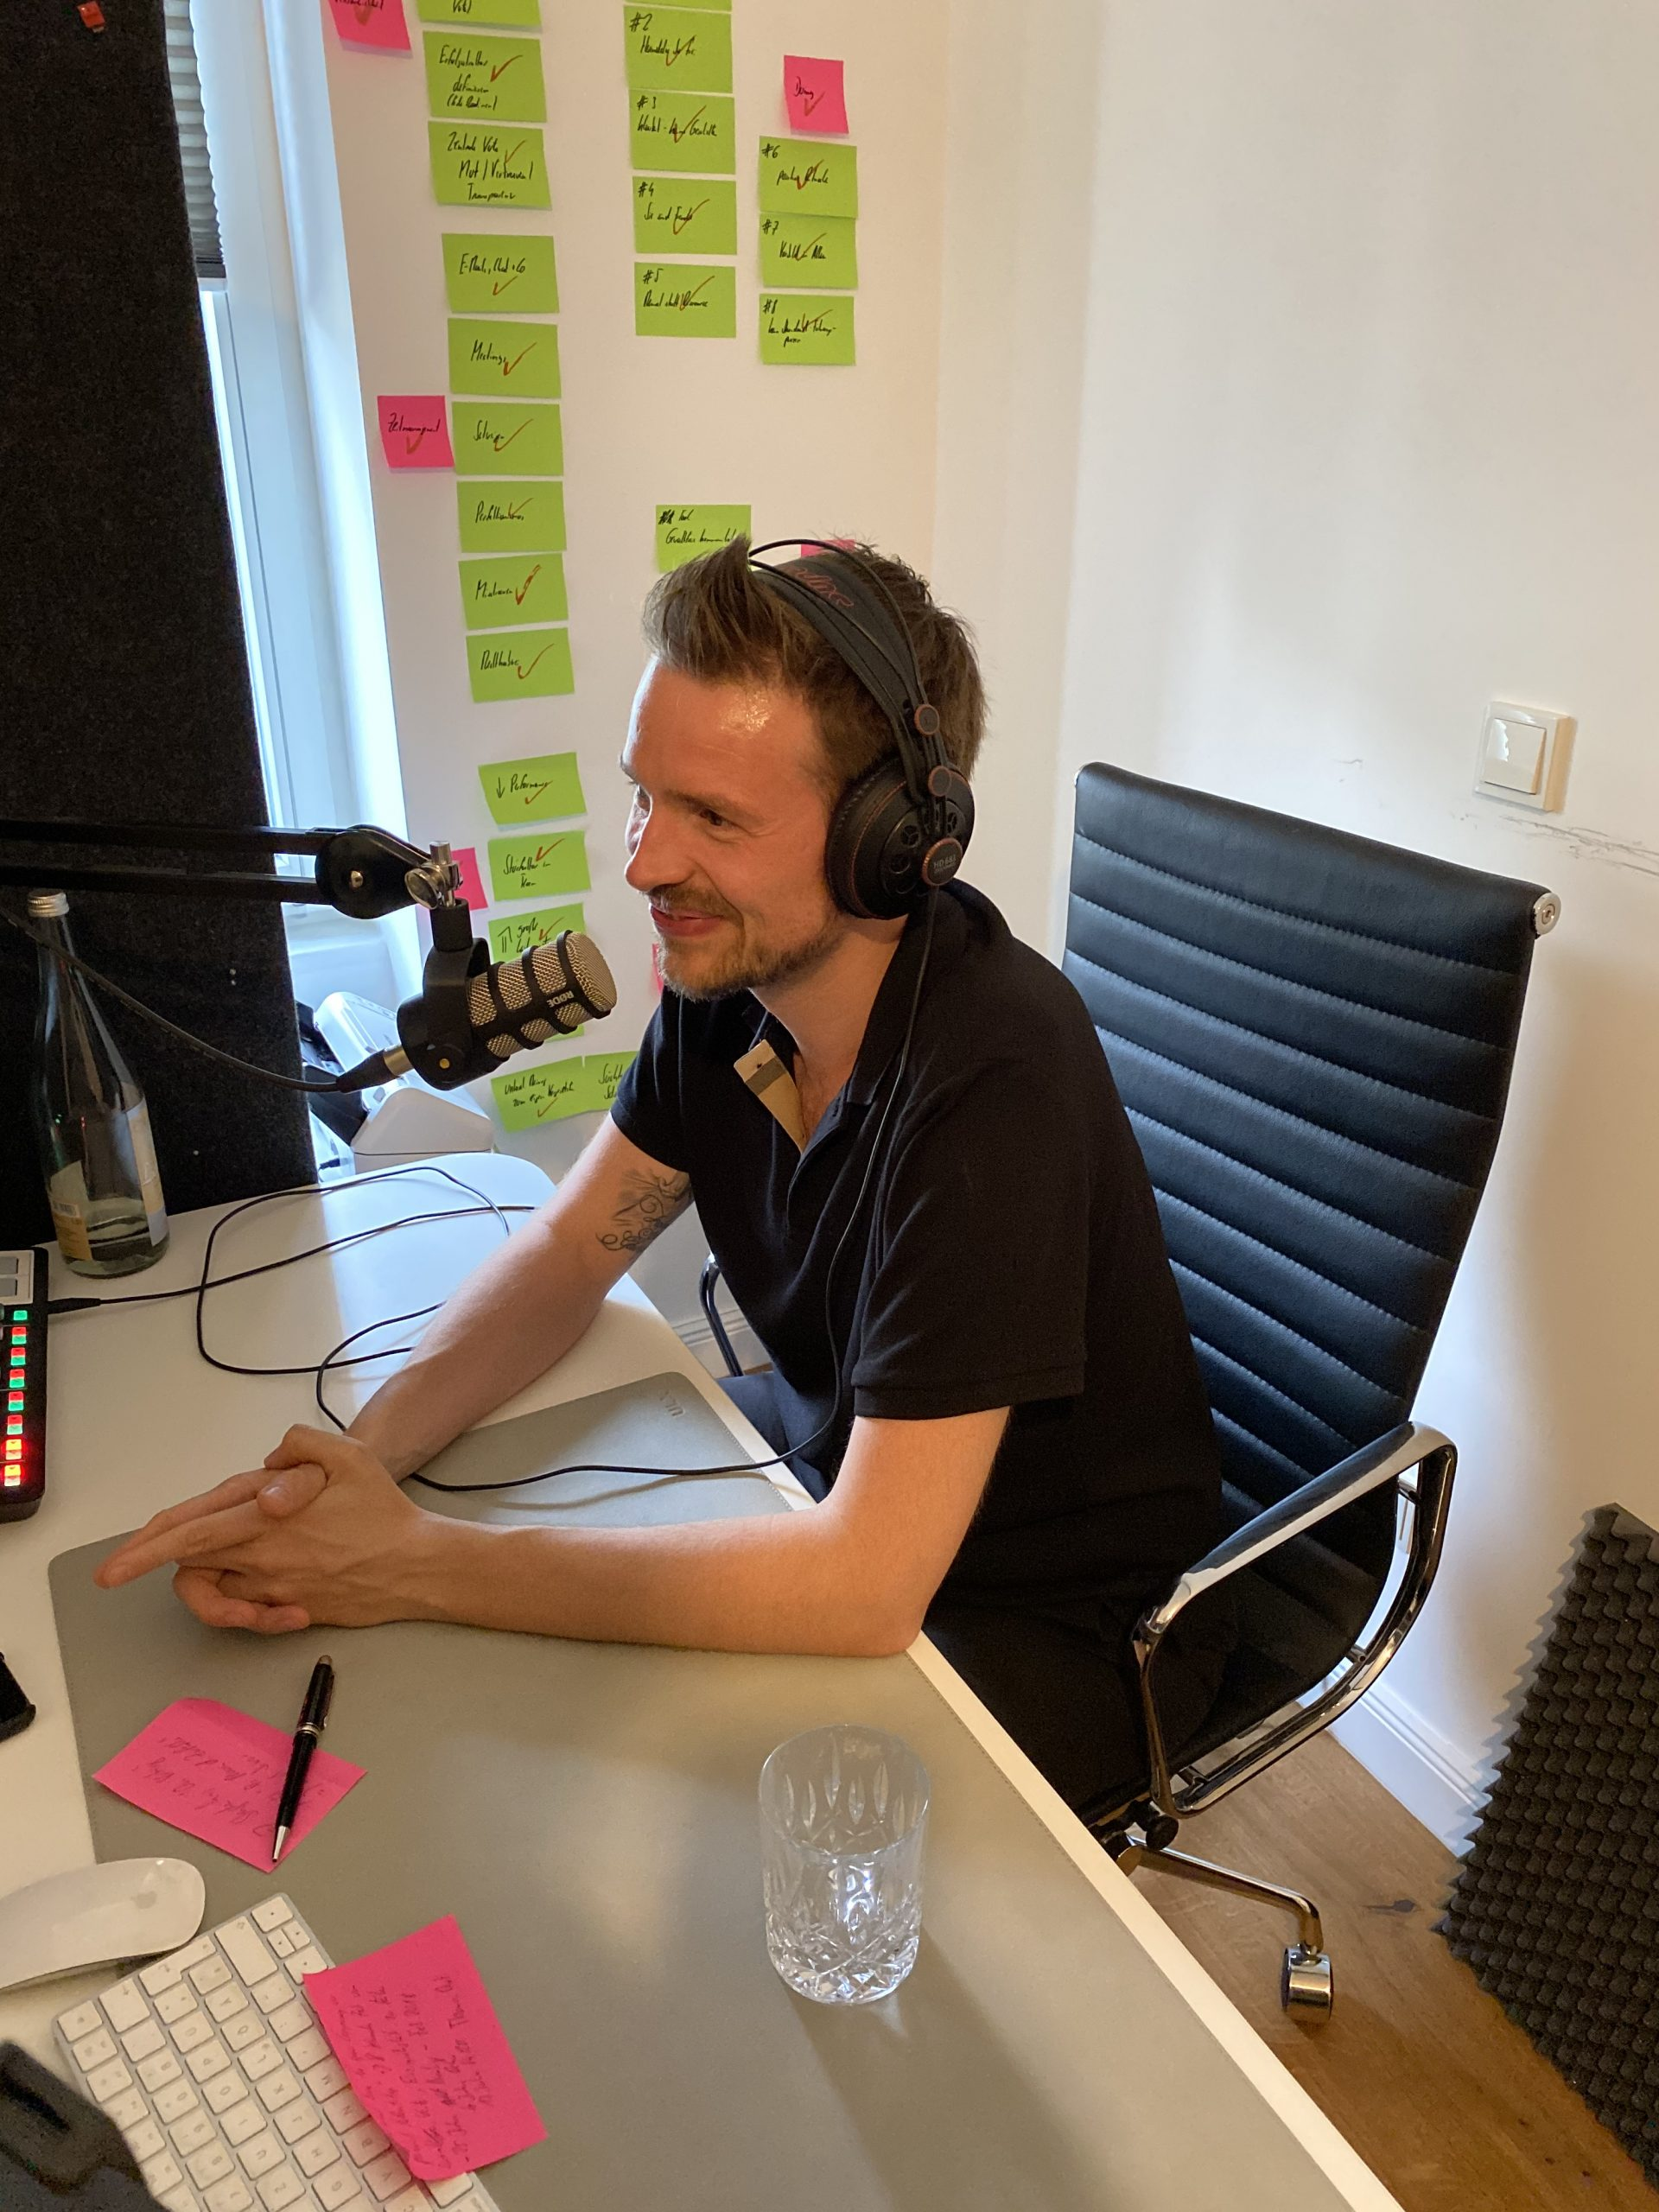 Dr. Juergen Weimann during the podcast interview